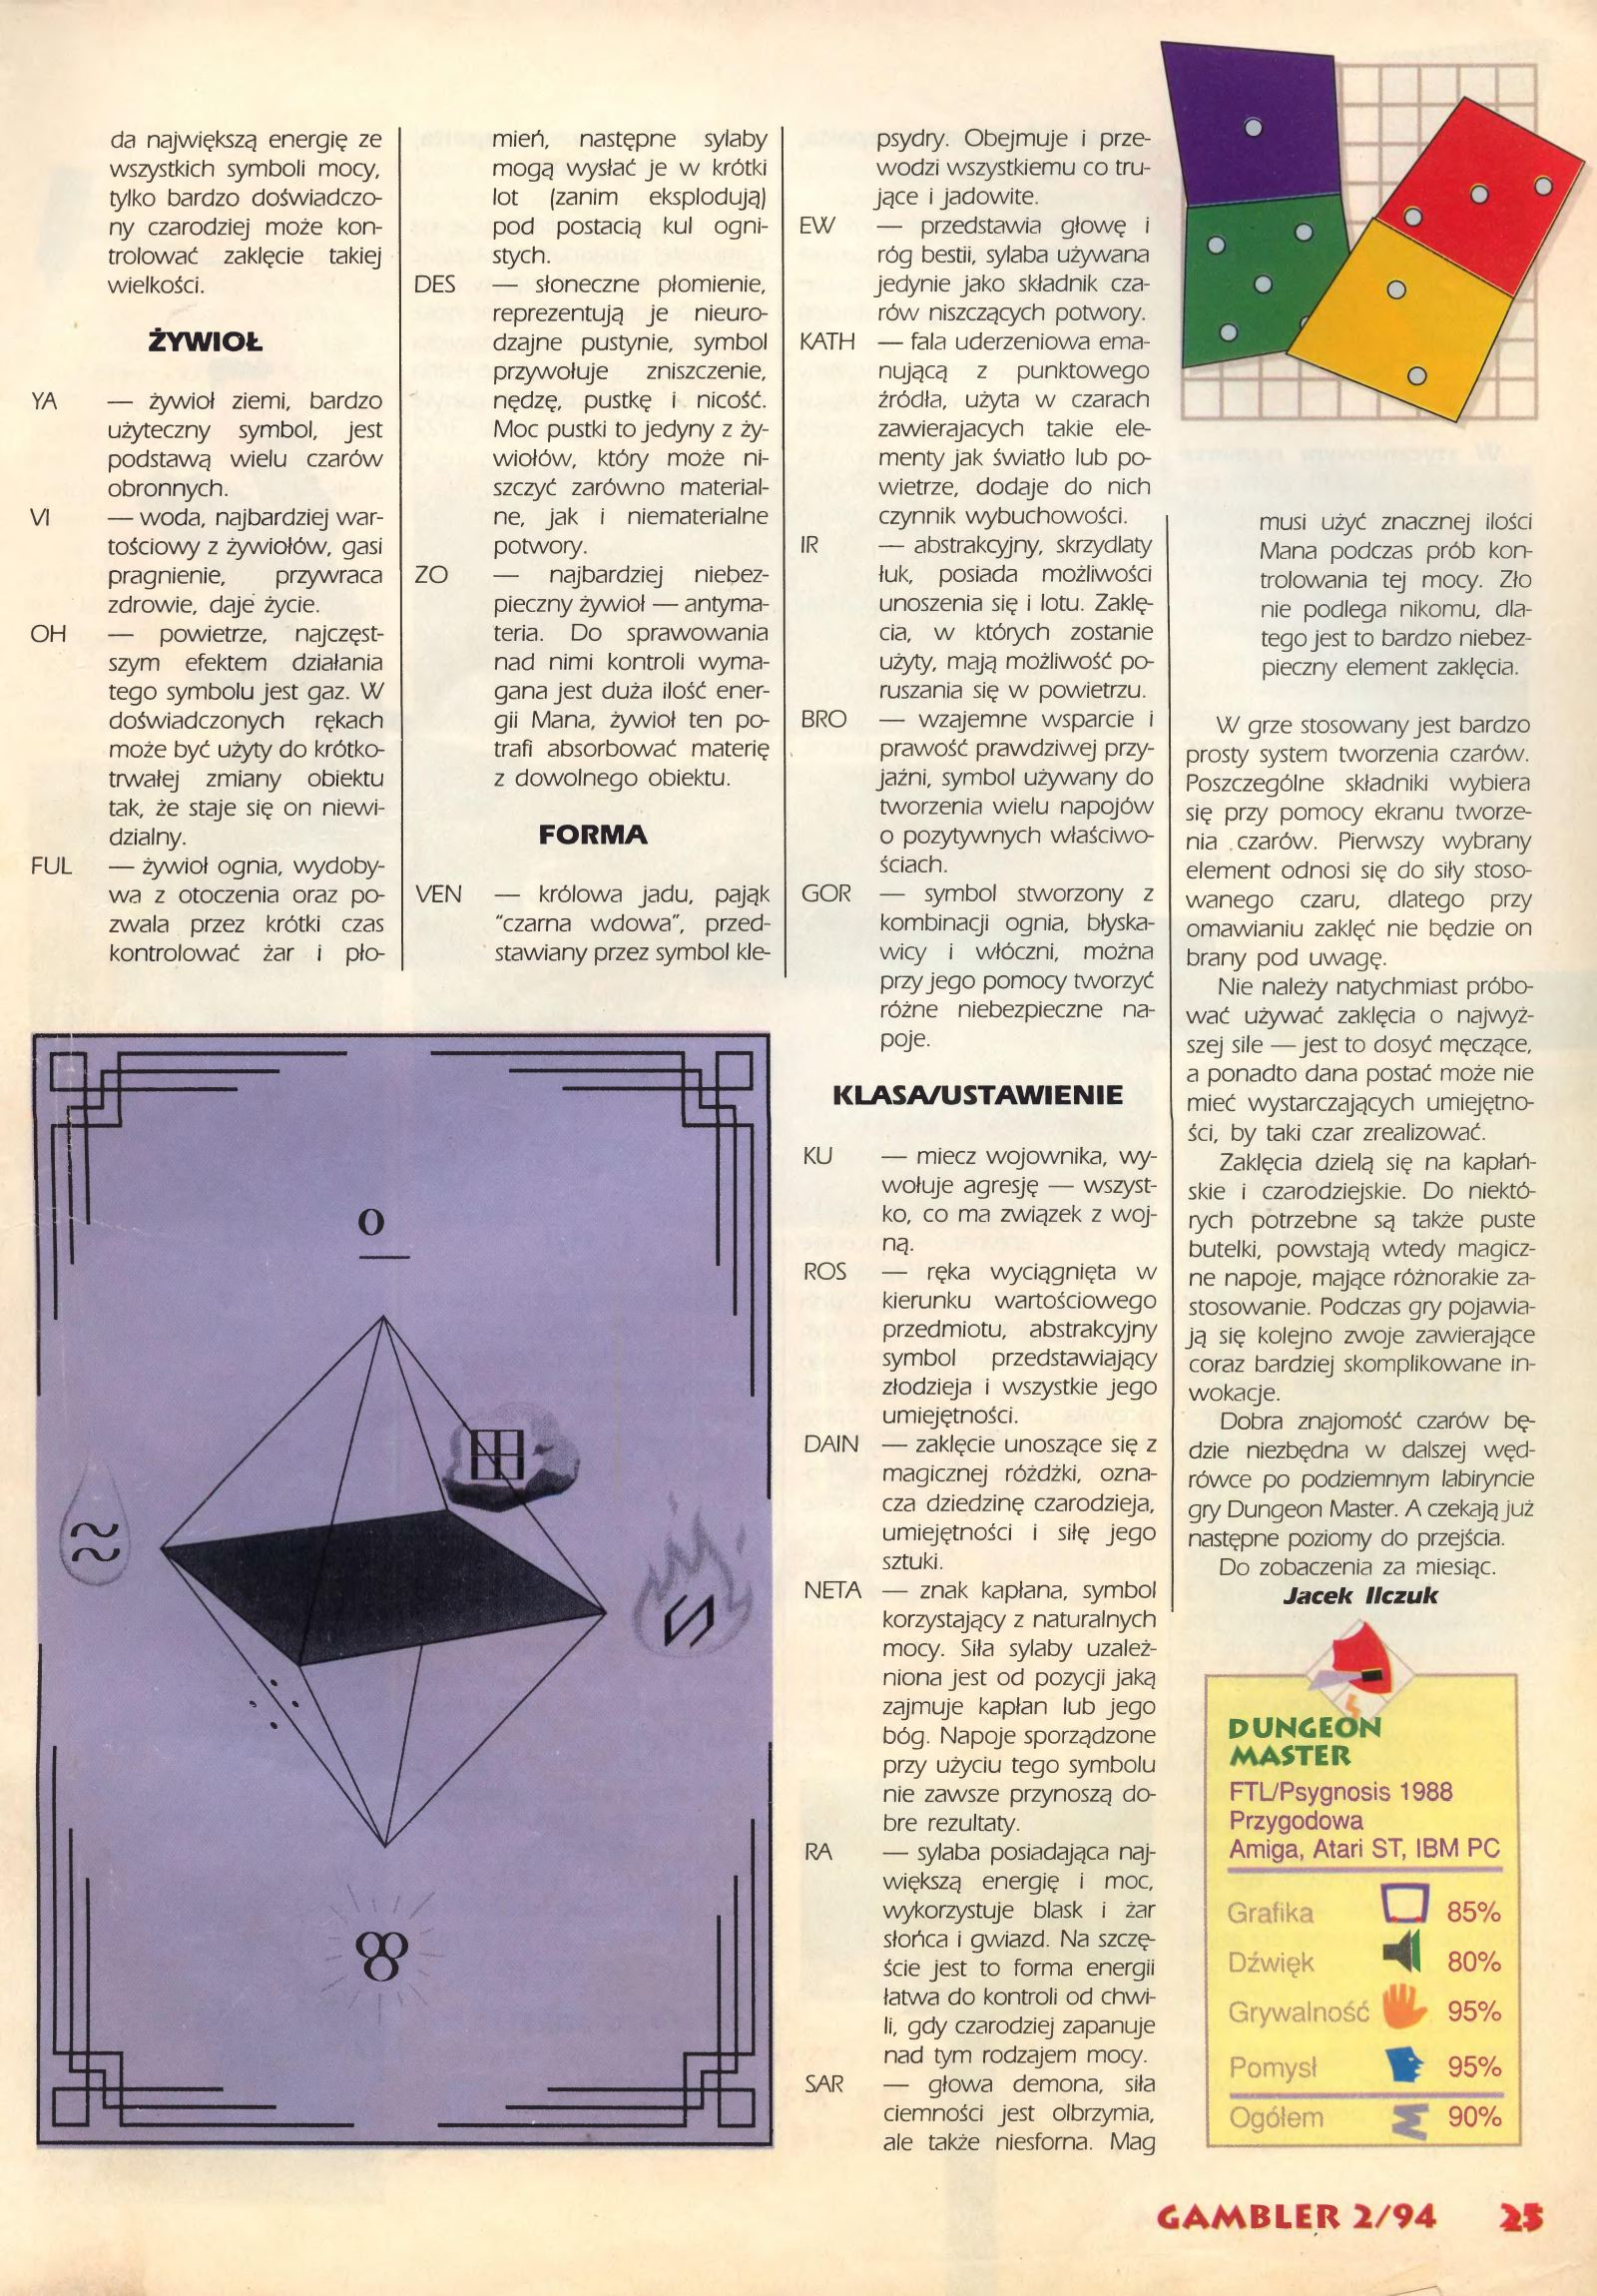 Dungeon Master Guide published in Polish magazine 'Gambler', February 1994, Page 25